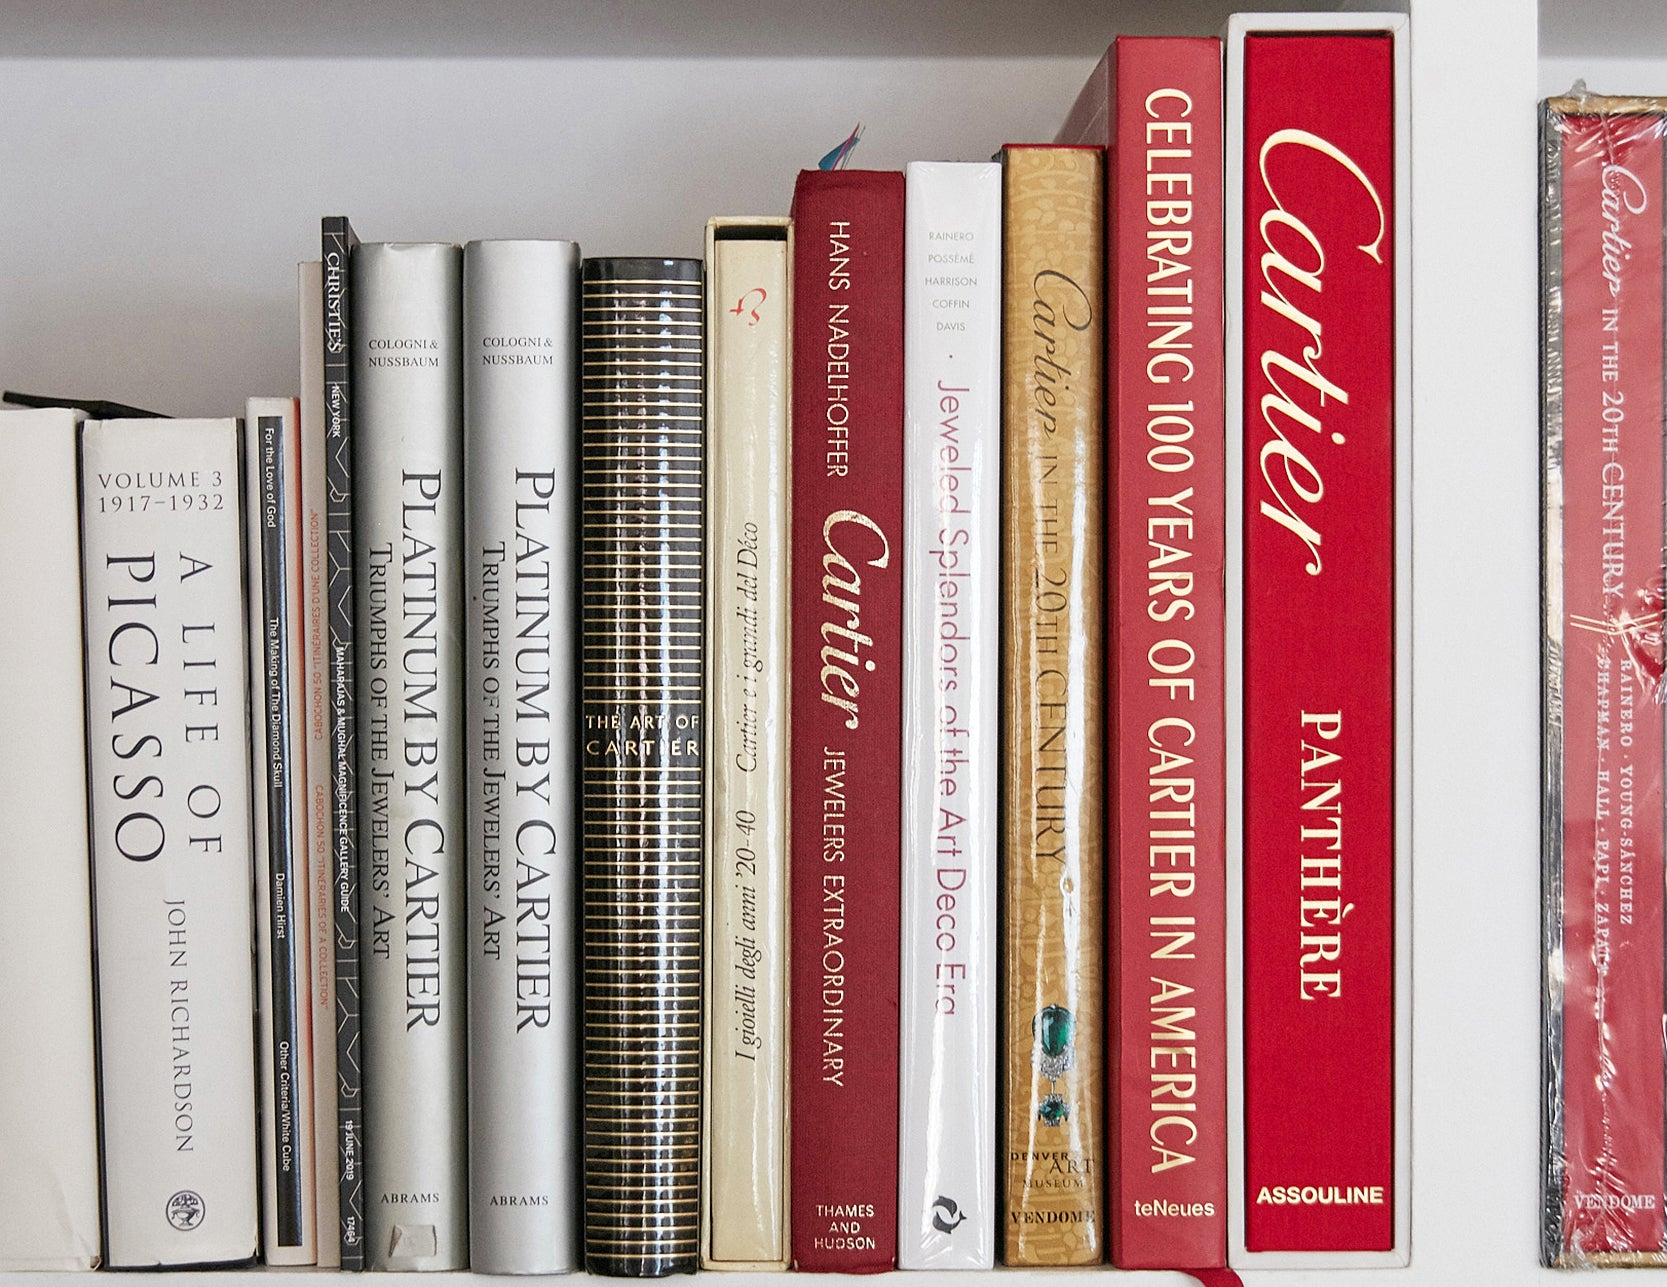 Cartier watch bookshelf from Harry Fane's house shot during an interview with A Collected Man Lonodn